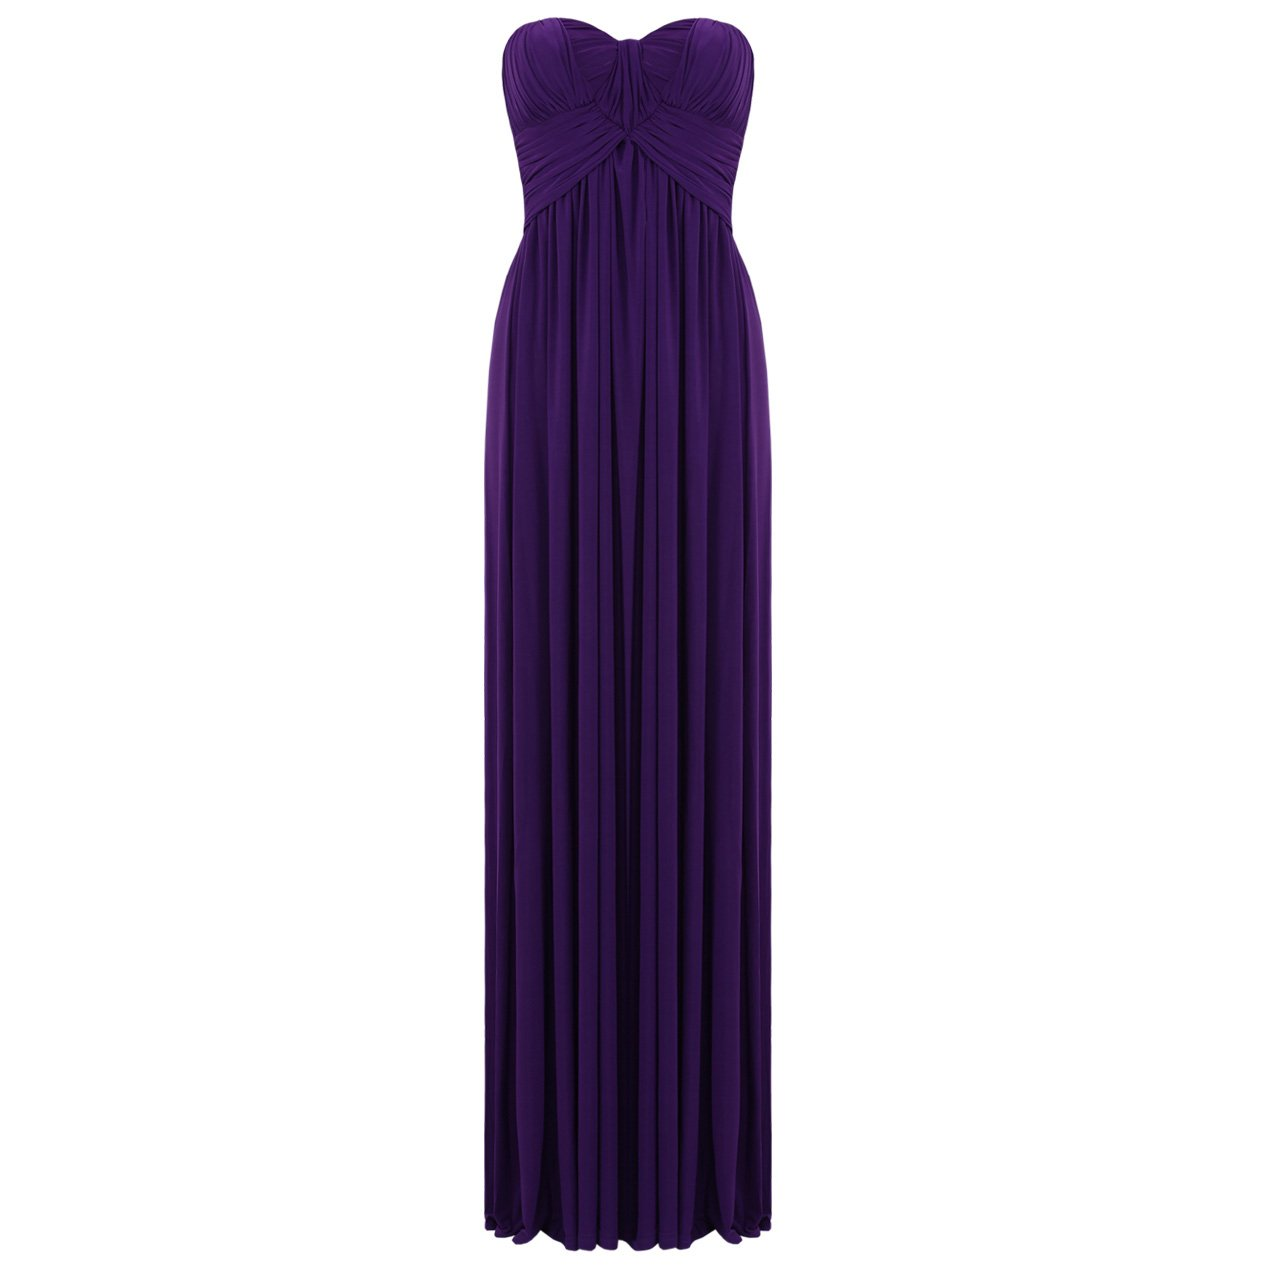 JESSICA ALBA PURPLE LADIES STRAPLESS LONG SUMMER EVENING PARTY PROM GOWN MAXI DRESS UK 8-10, US 4-6